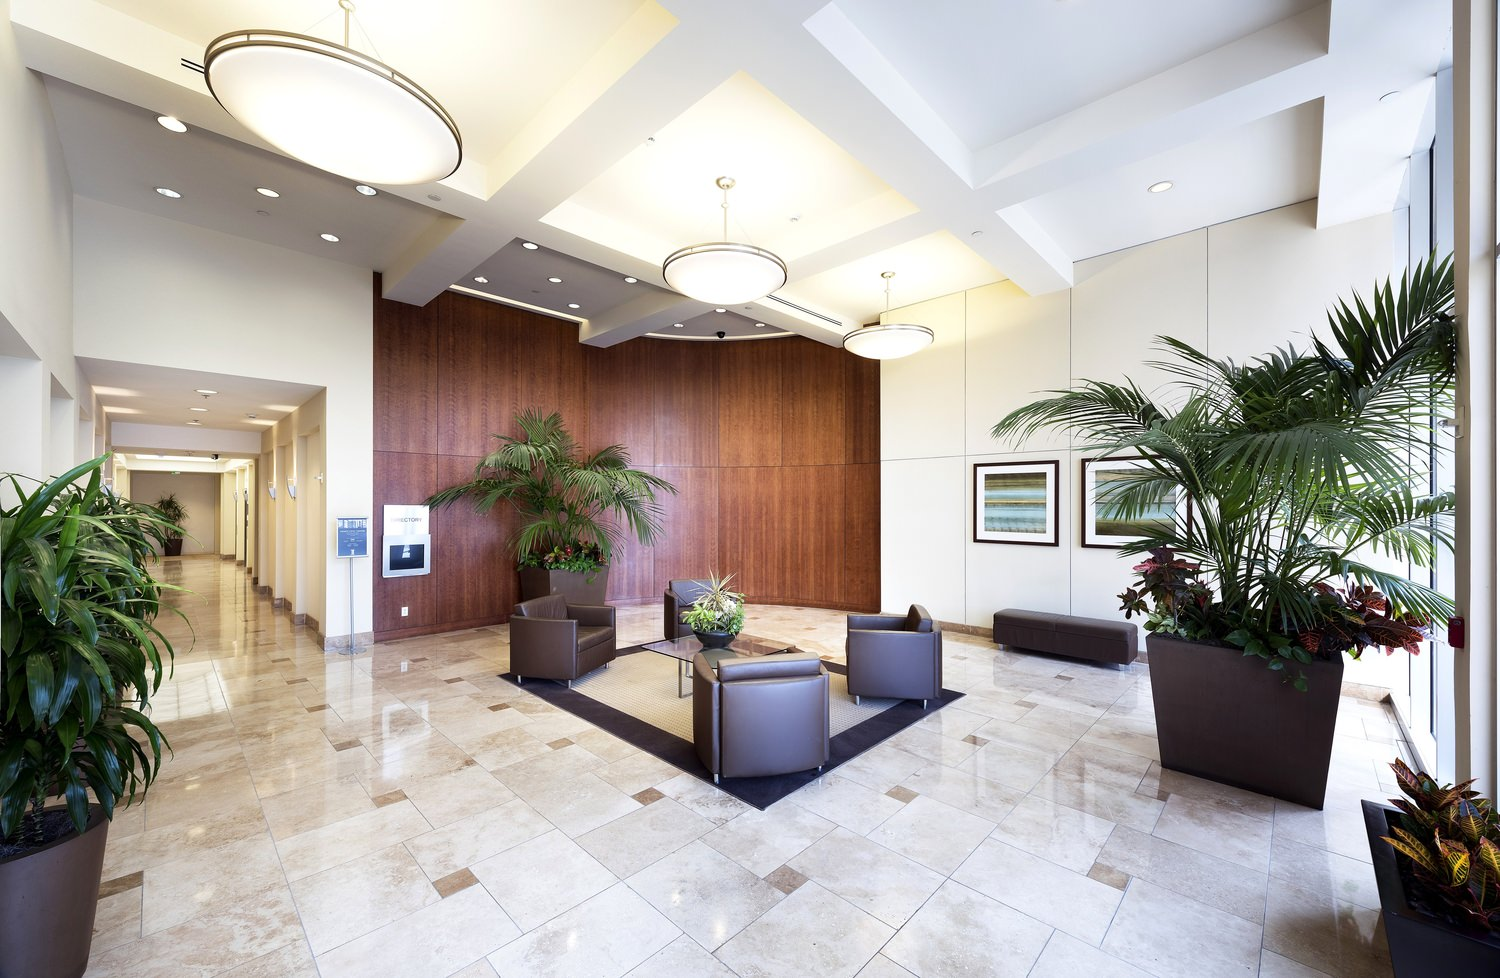 Indoor lobby of a building that has plants and different furnitures like couches.